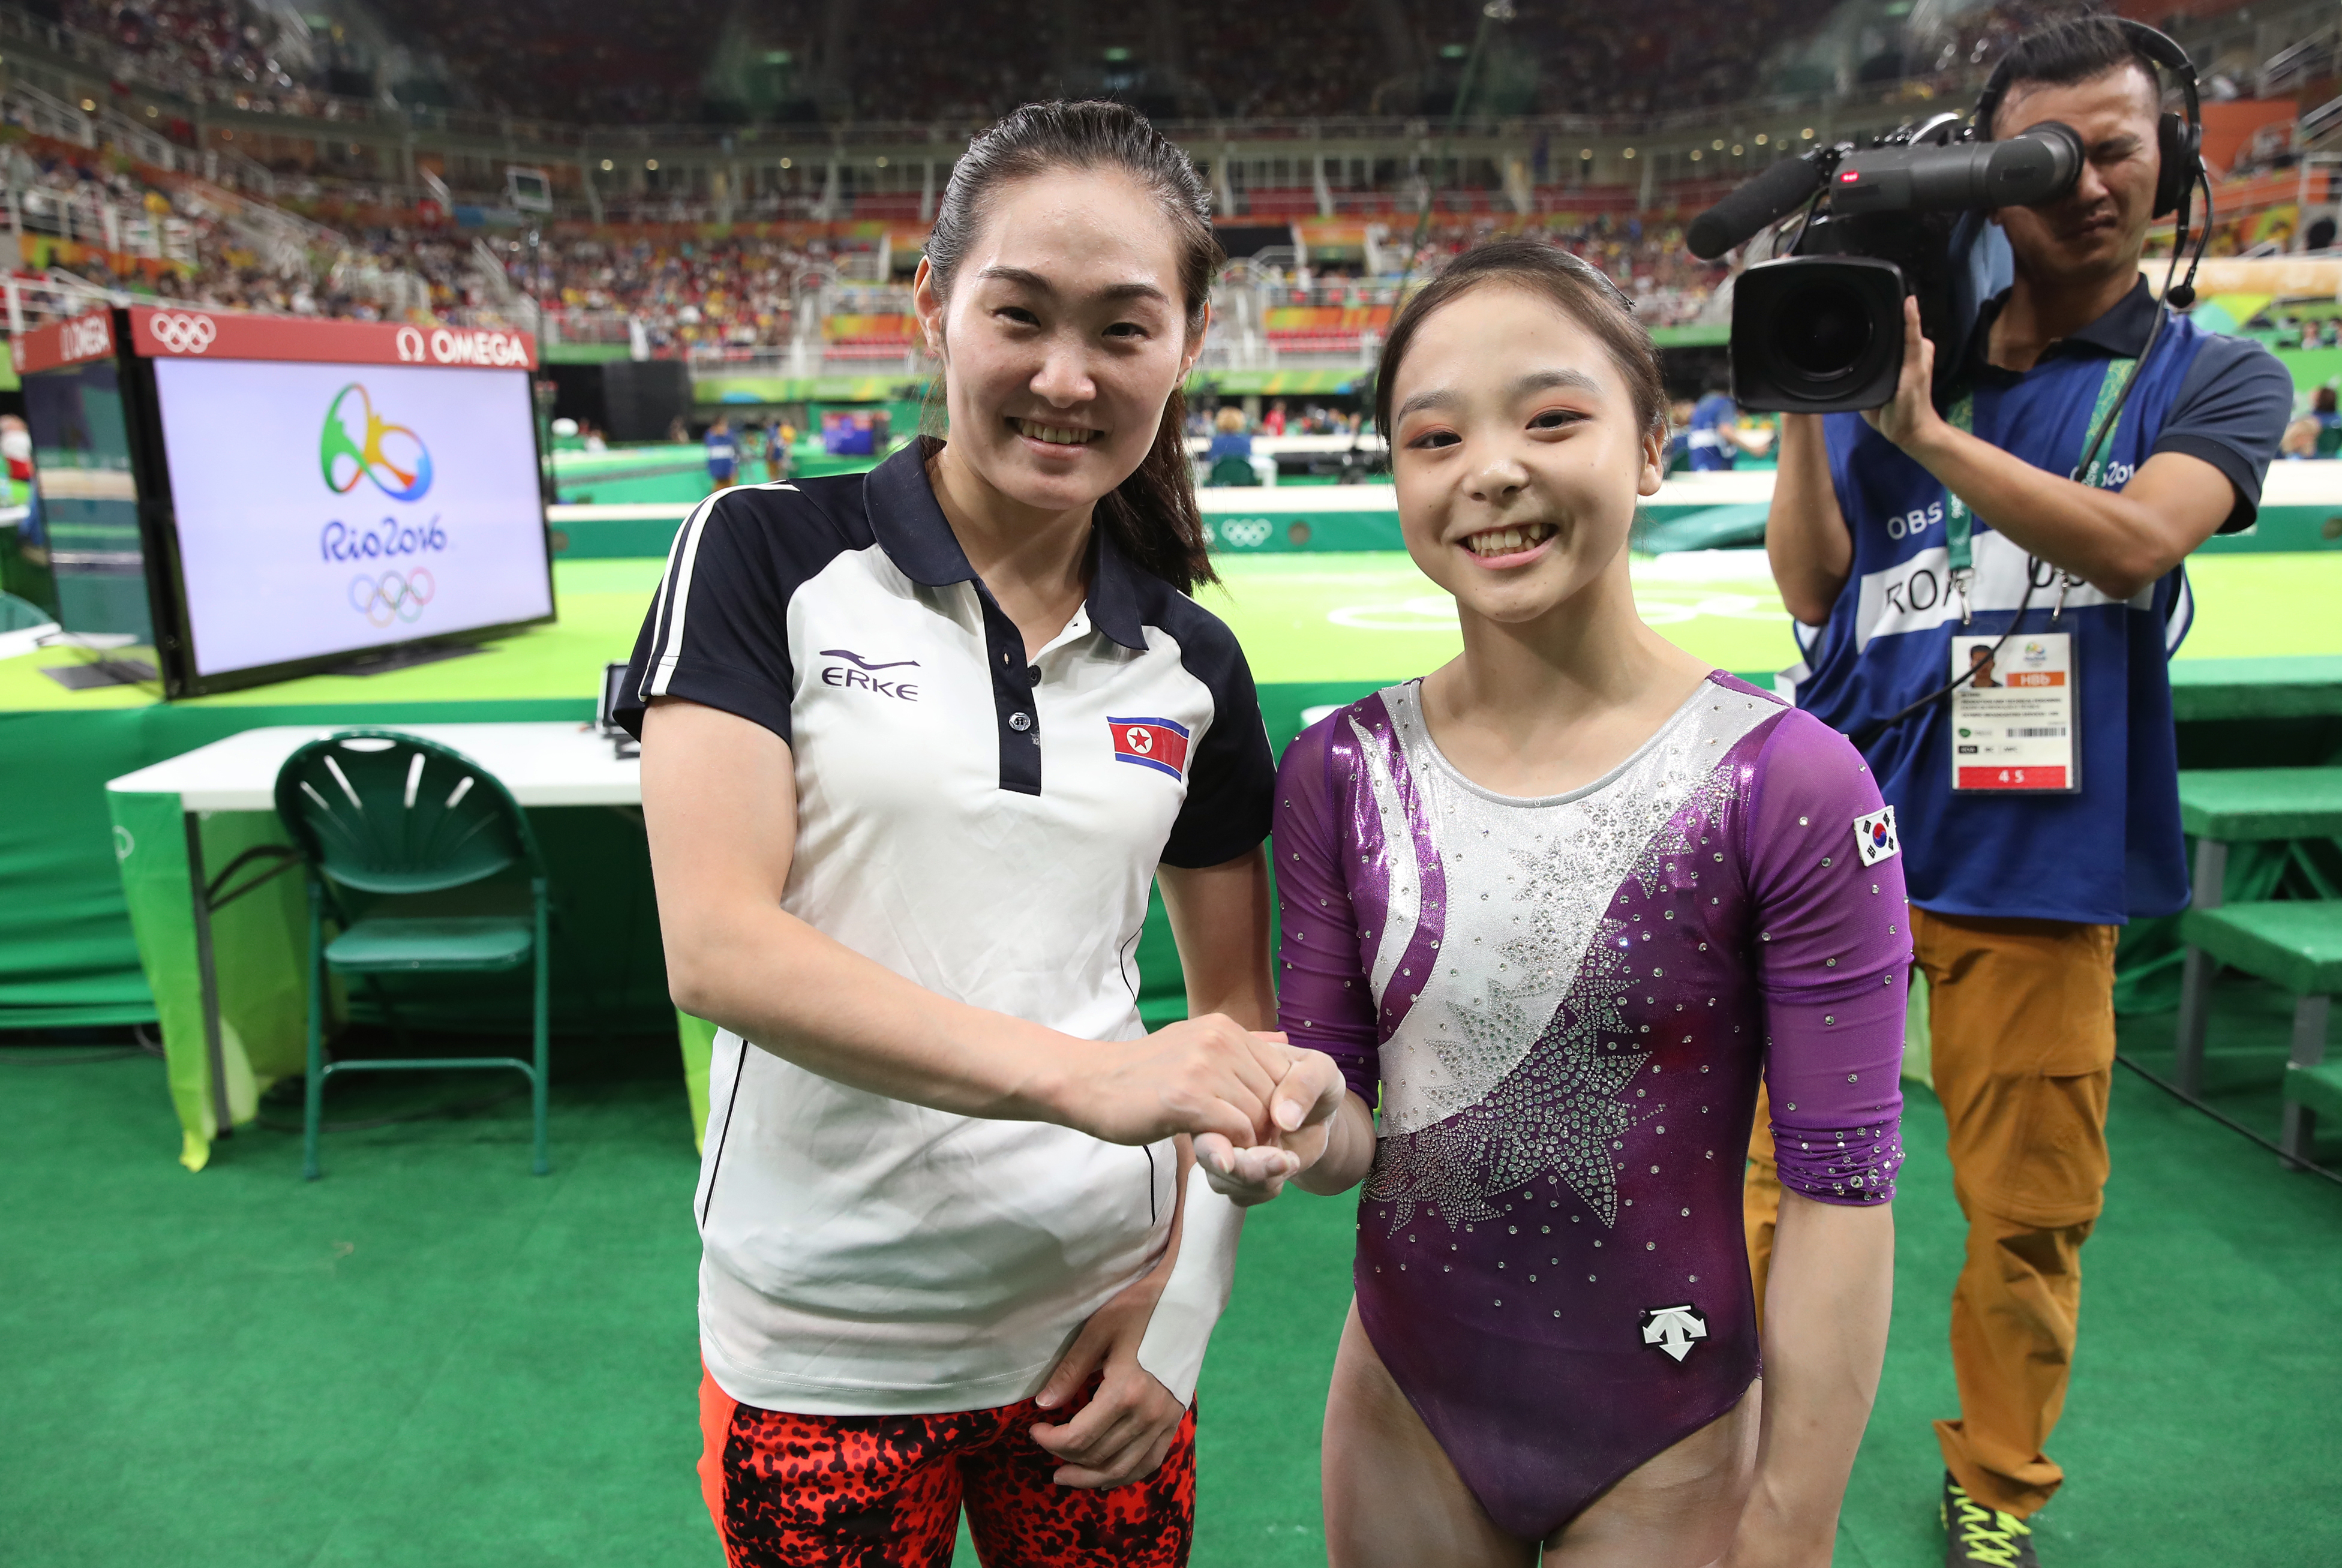 In this Sunday, Aug 7, 2016 photo, South Korean gymnast Lee Eun-ju, right, and her North Korean counterpart Hong Un Jong shake hands and smile together for photographers during the artistic gymnastics women's qualification at the 2016 Summer Olympics in R